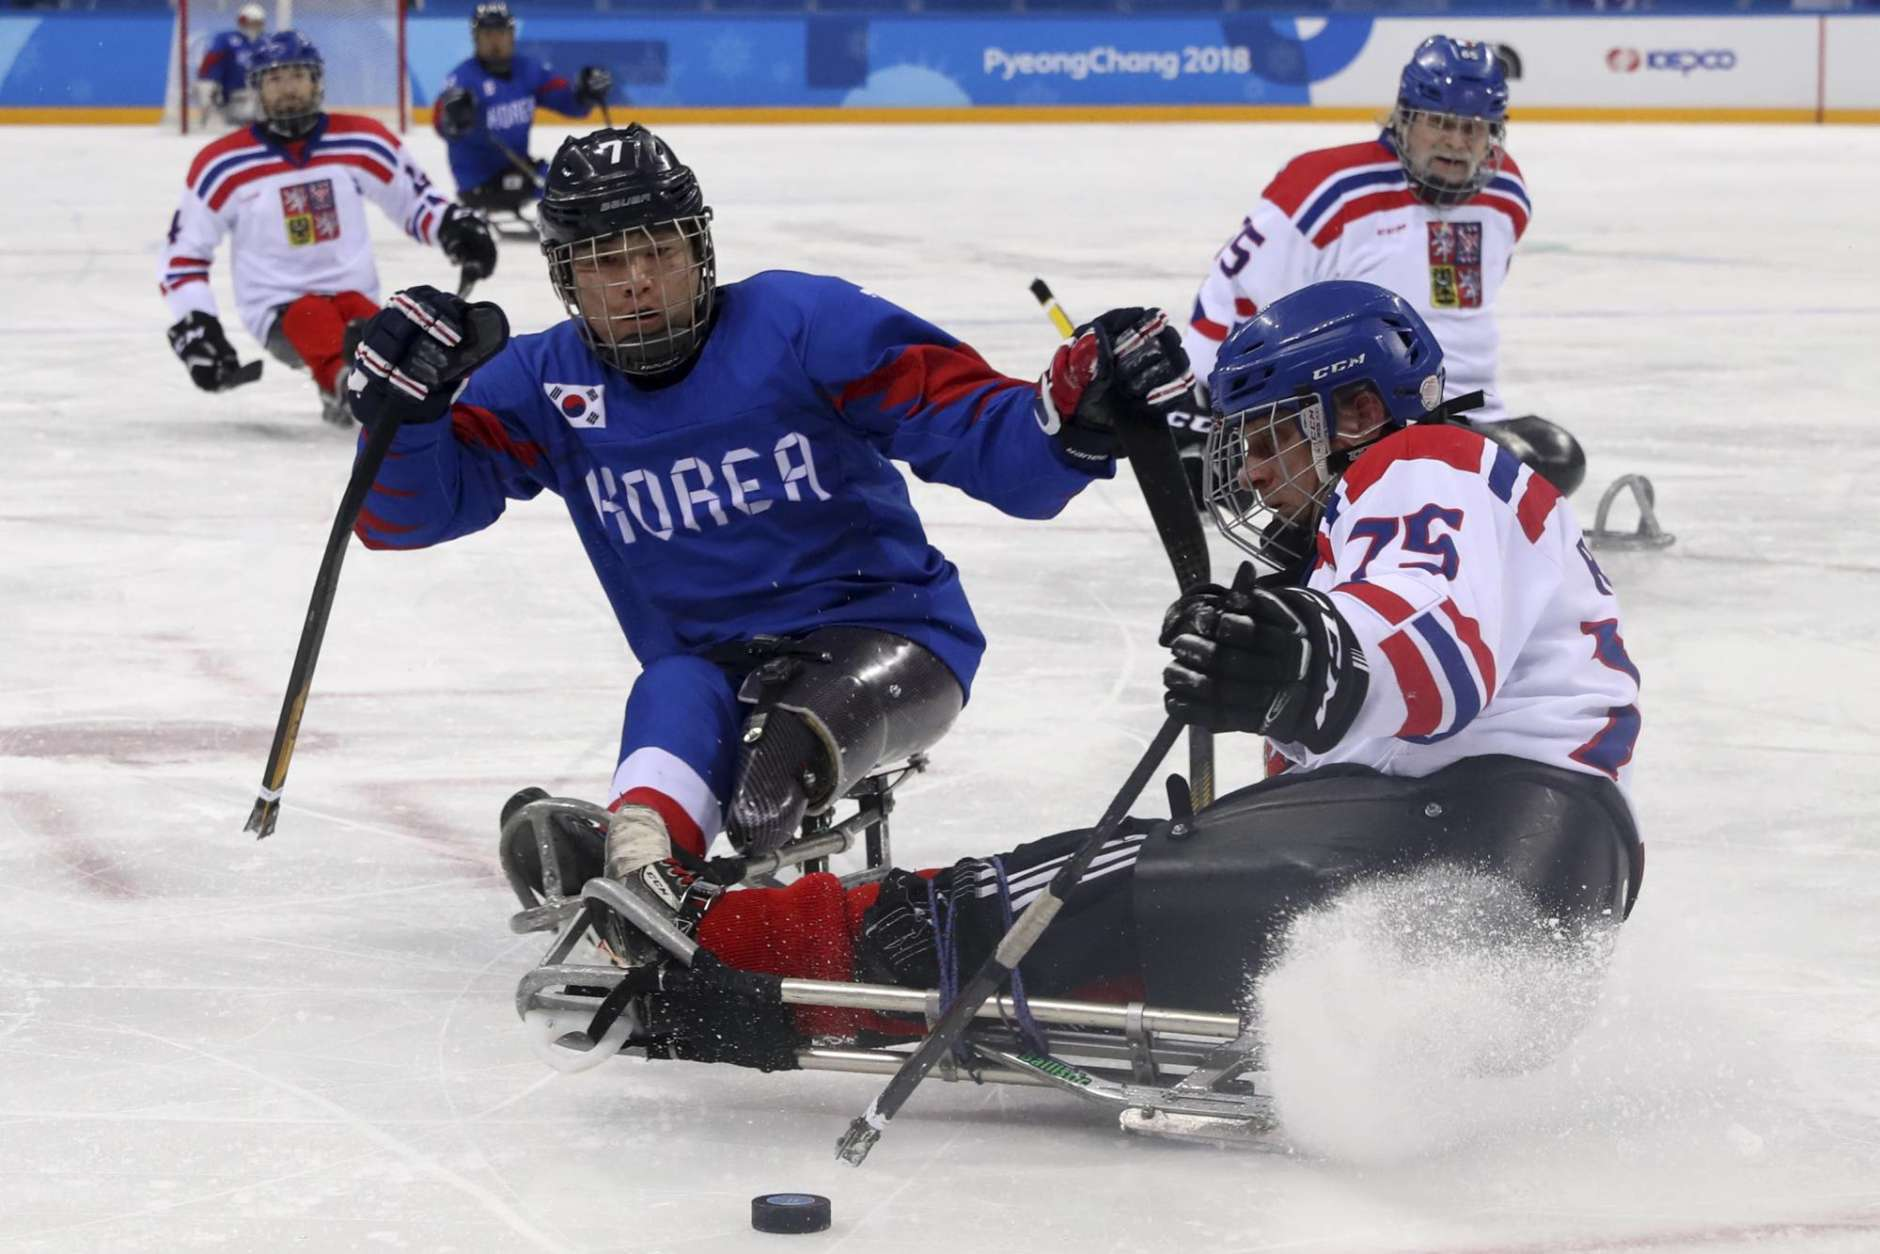 Czech Republic's Jiri Raul keeps the puck from South Korea's Choi Kwang Hyouk during a preliminary Ice Hockey match of the 2018 Winter Paralympics held in Guangneung, South Korea, Sunday, March 11, 2018. (AP Photo/Ng Han Guan)